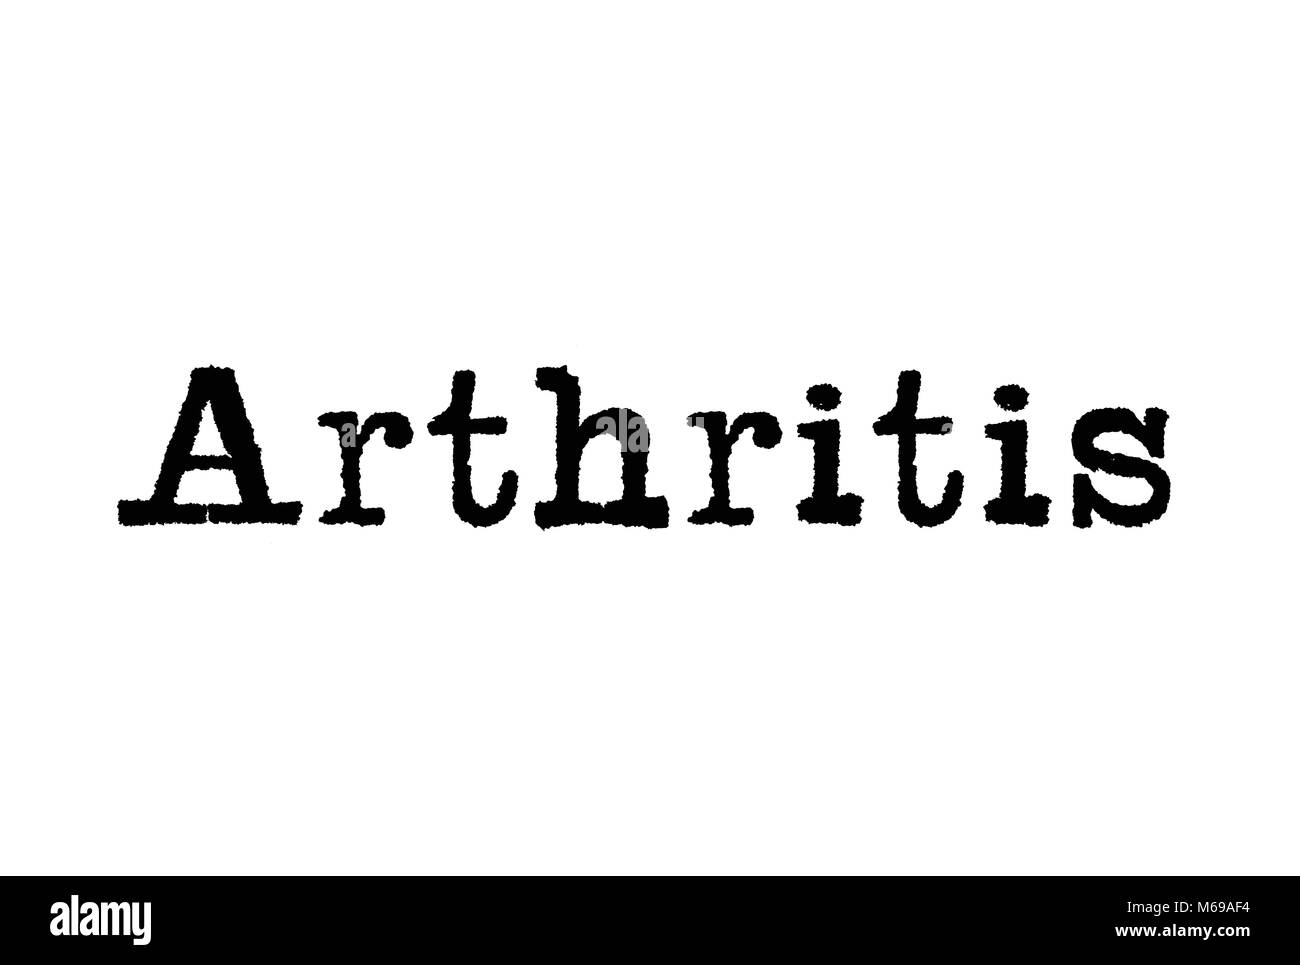 The word Arthritis from a typewriter on a white background - Stock Image